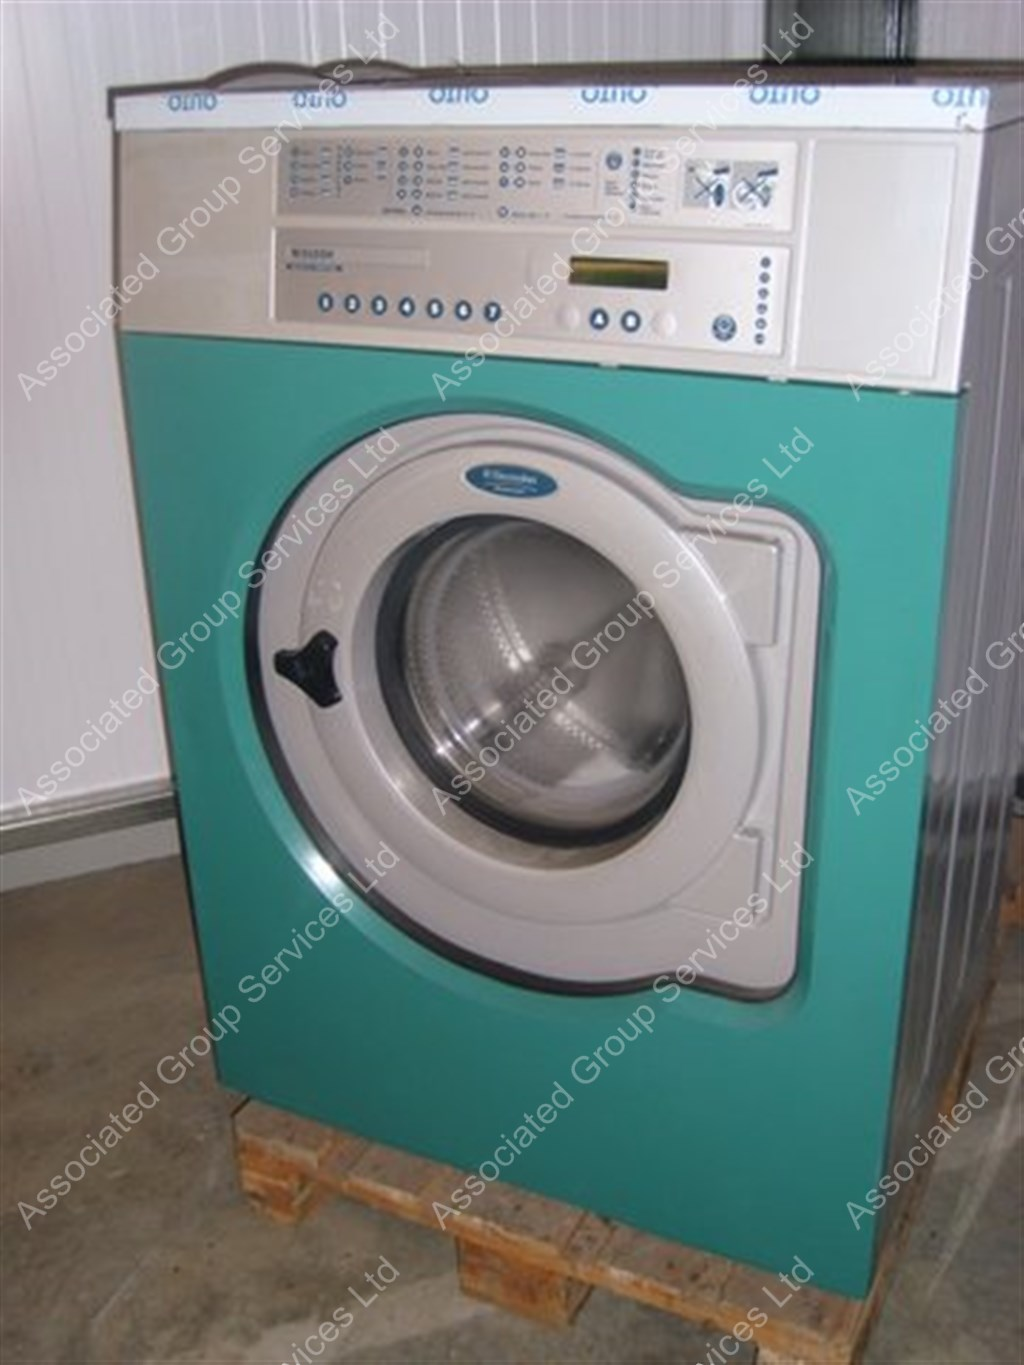 washers ags limited rh agslimited co uk Electrolux Ovens Manual Electrolux Washer Service Manual